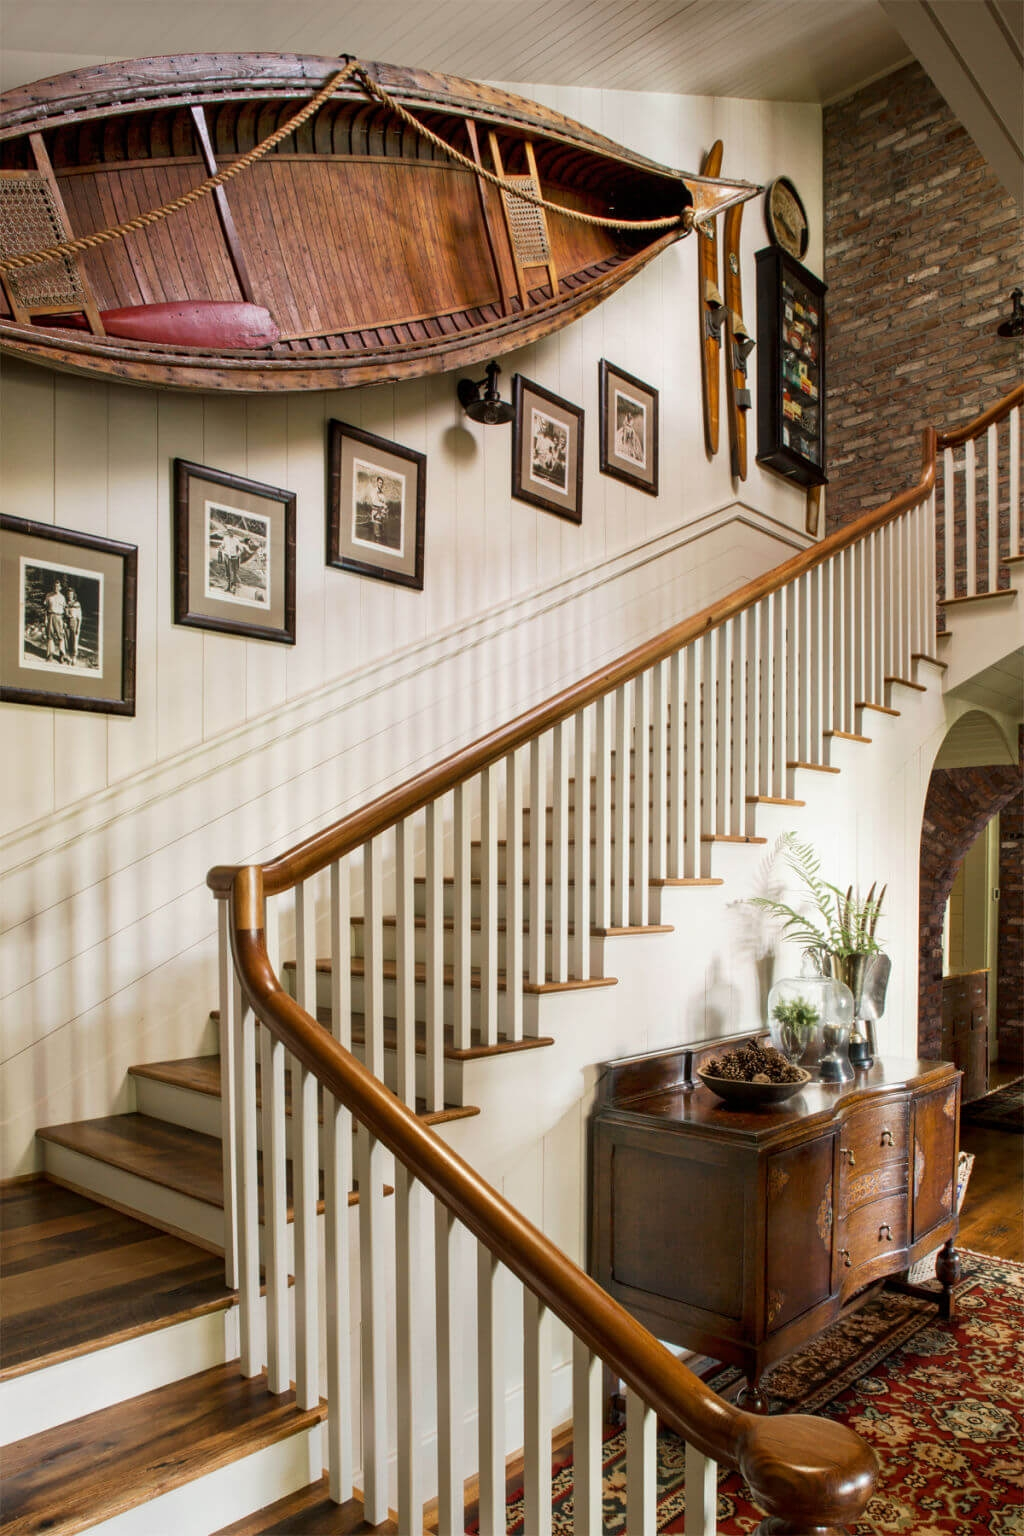 28 Best Stairway Decorating Ideas And Designs For 2020 | Steps Side Wall Designs | Bedroom | Small House | Marble | Dining Room | Wall Highlight